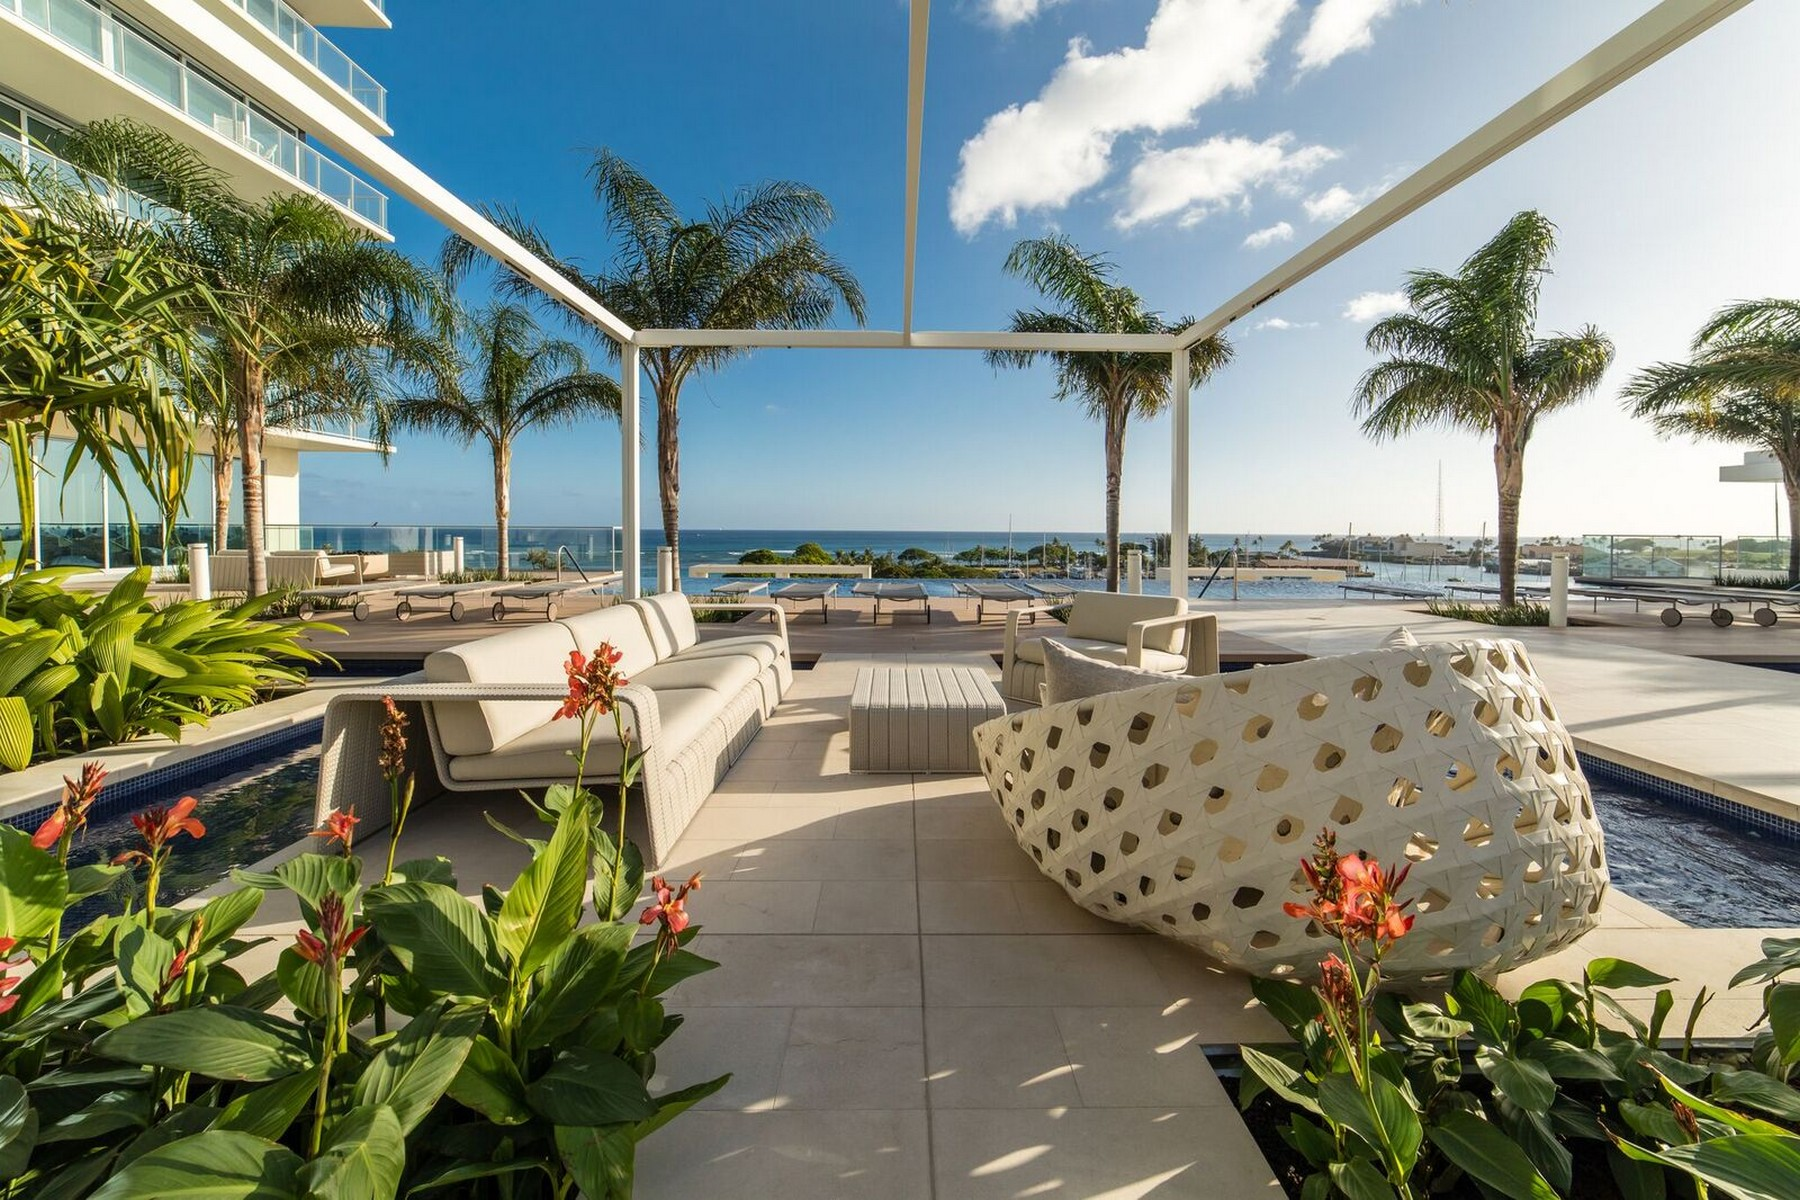 Condominium for Sale at Spectacular Diamond Head and Ocean Views 1118 Ala Moana Blvd #2300 Honolulu, Hawaii 96814 United States